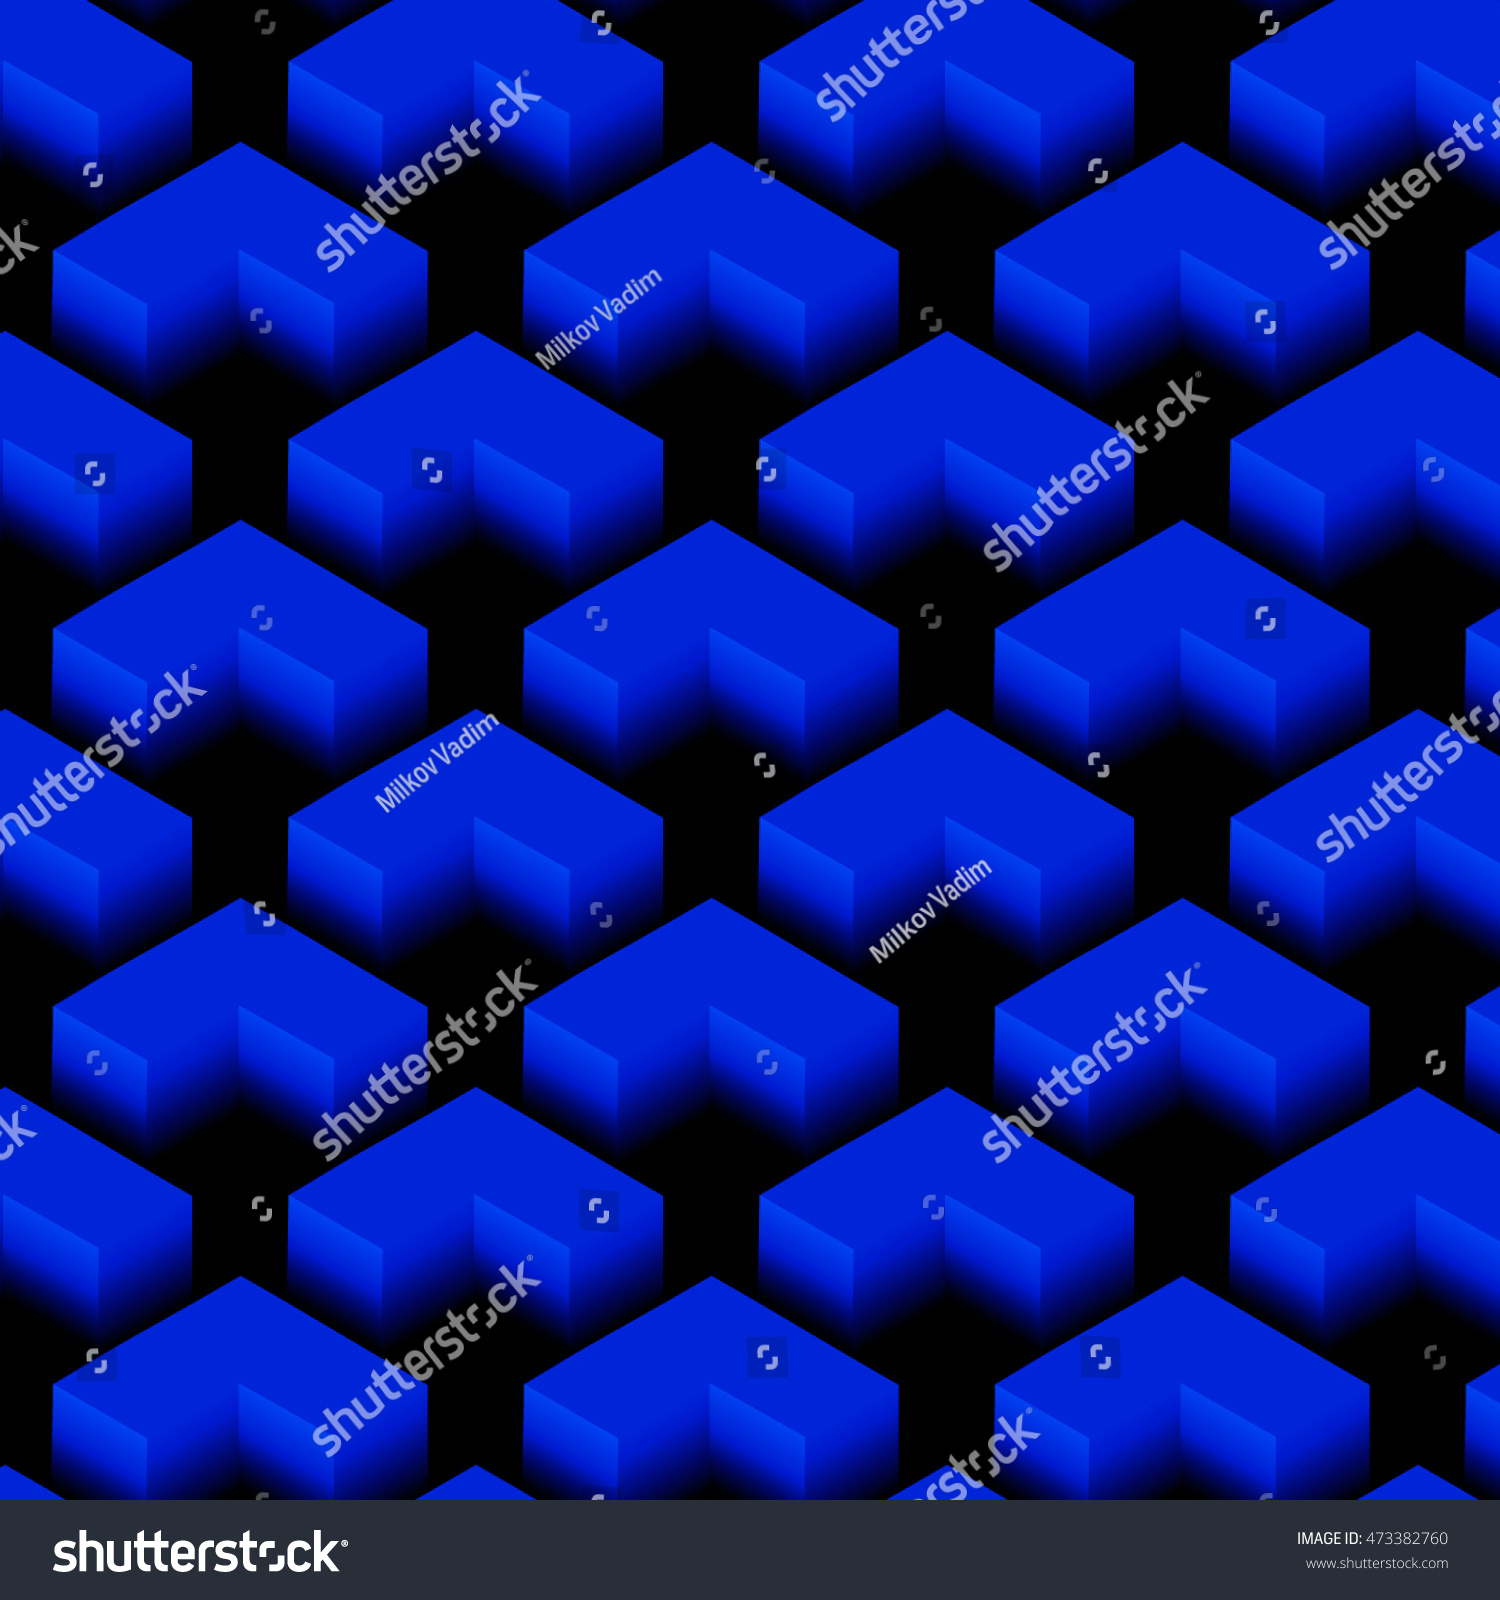 Design element abstract seamless vector pattern stock for Object pool design pattern